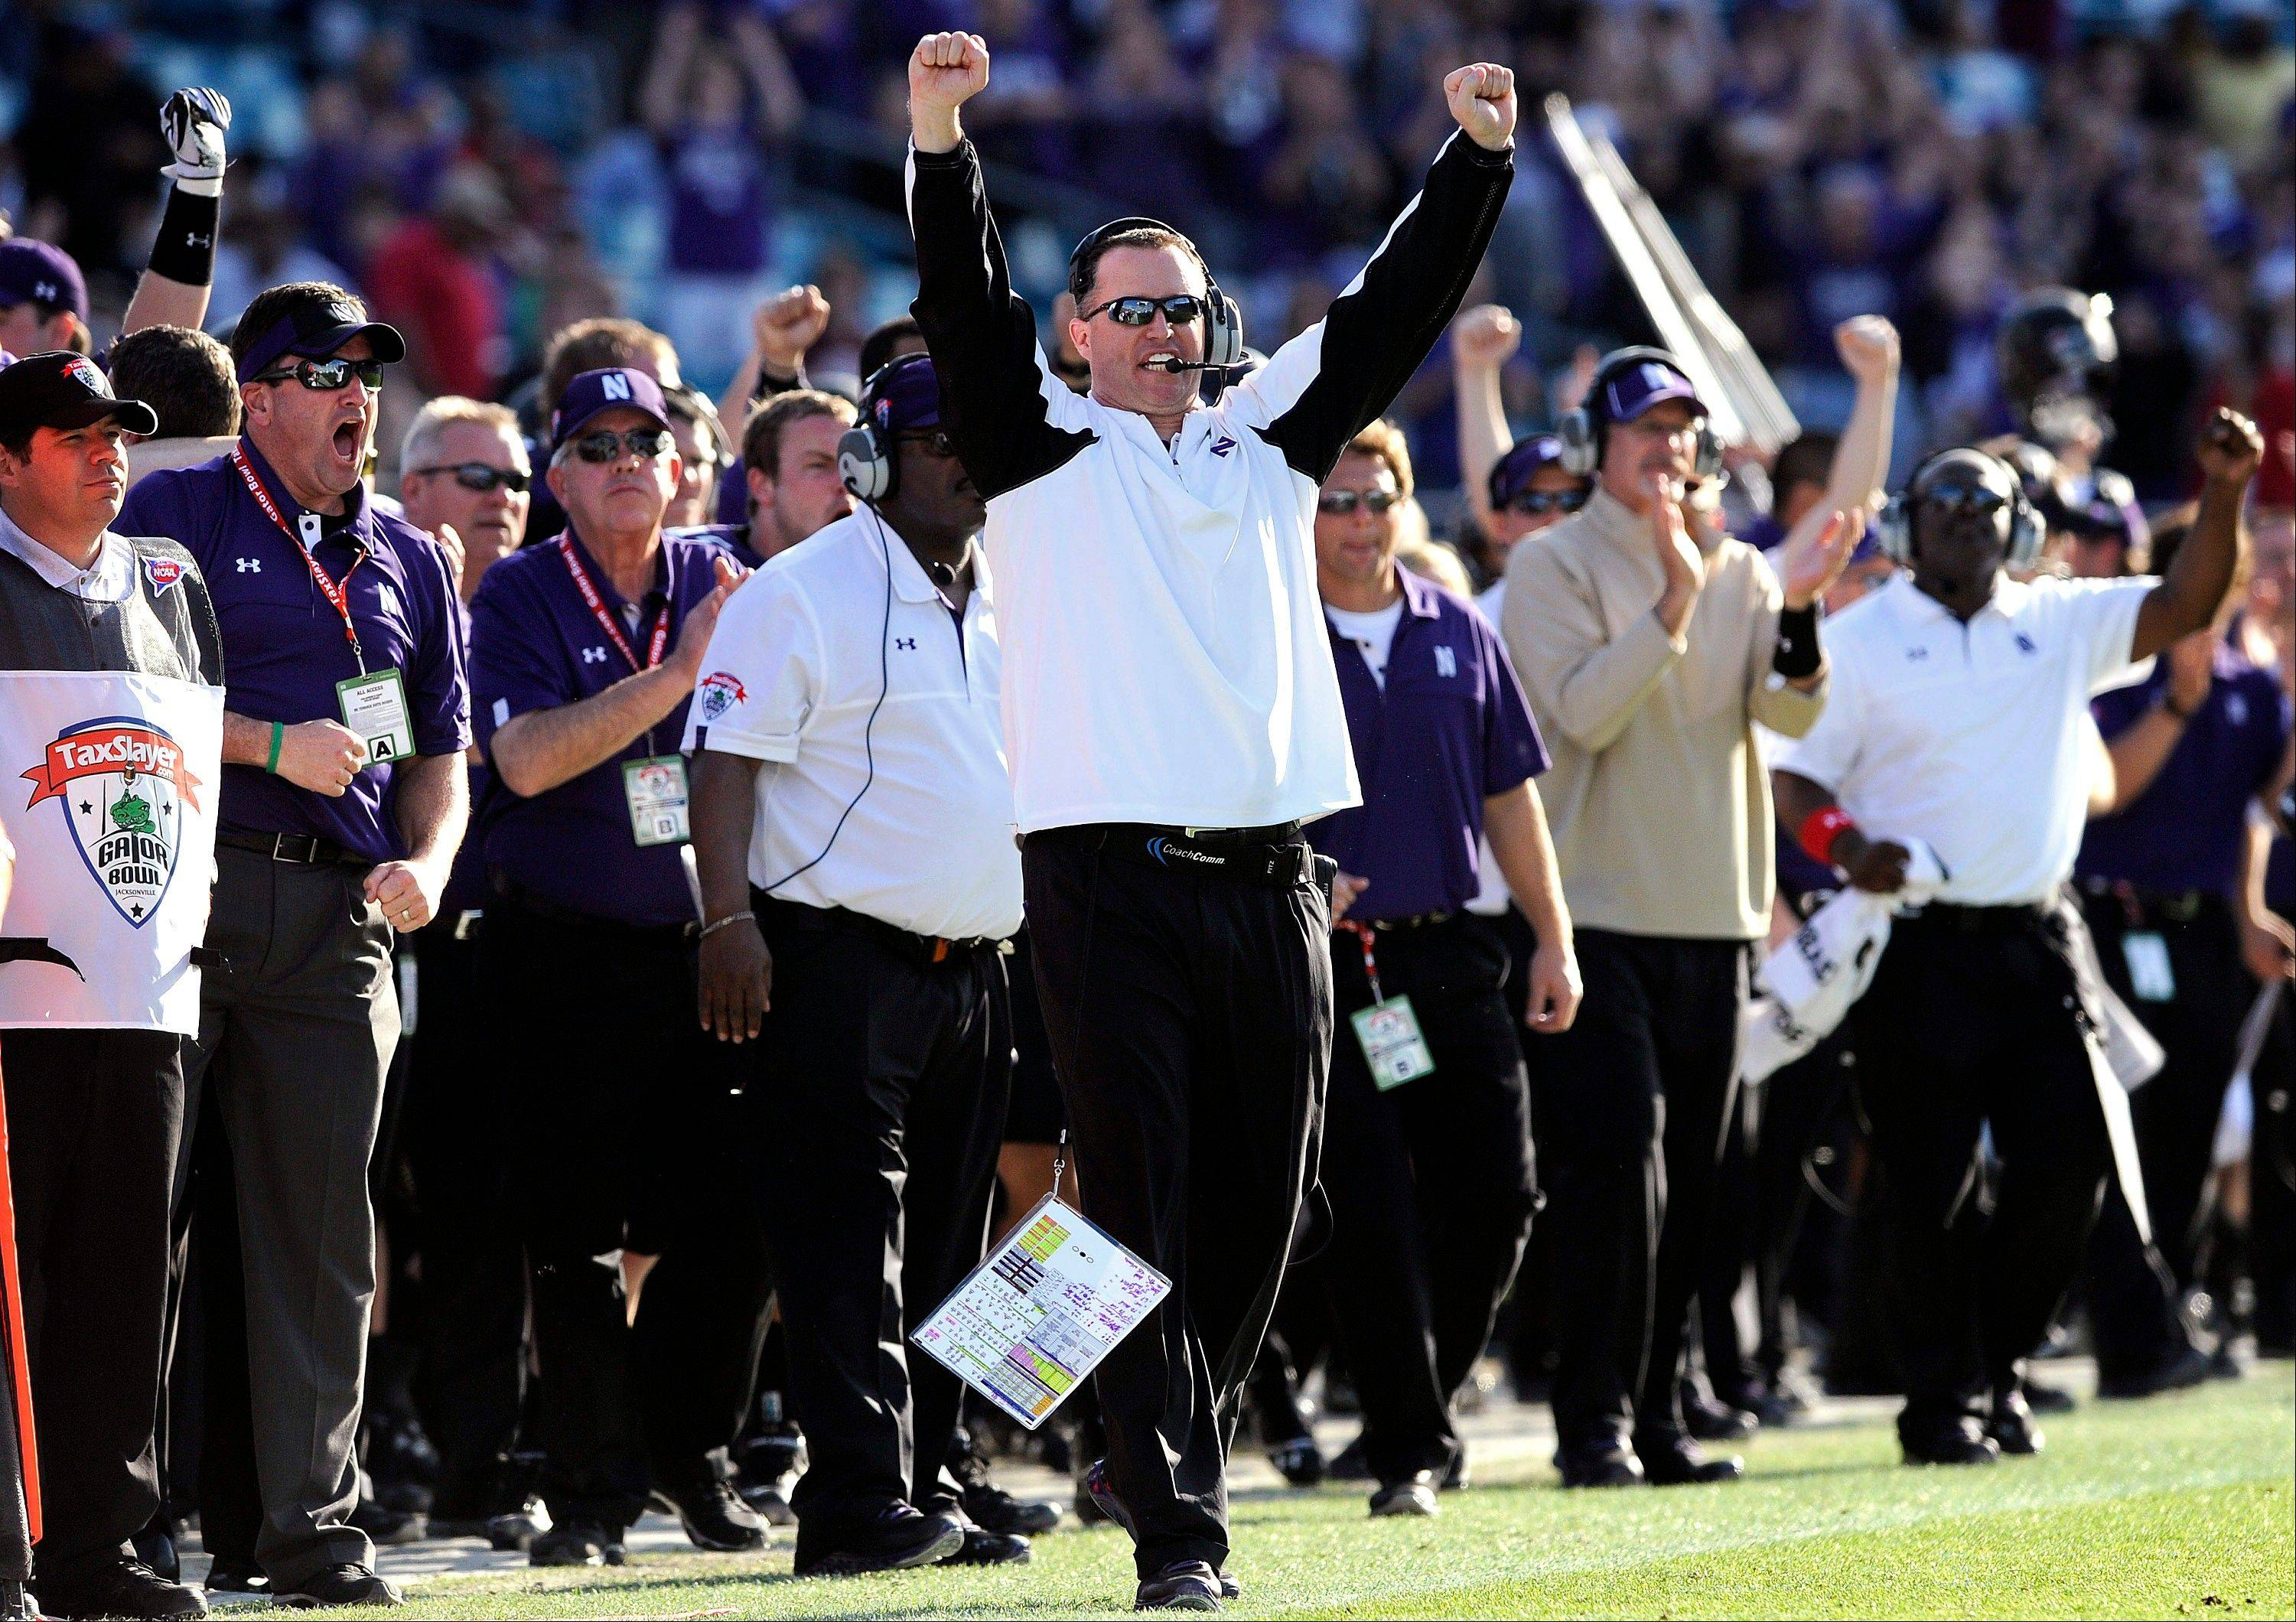 Northwestern head coach Pat Fitzgerald celebrates a first down in the closing seconds of the Gator Bowl against Mississippi State in Jacksonville, Fla. Northwestern will start the season No. 22 in the coaches' poll.